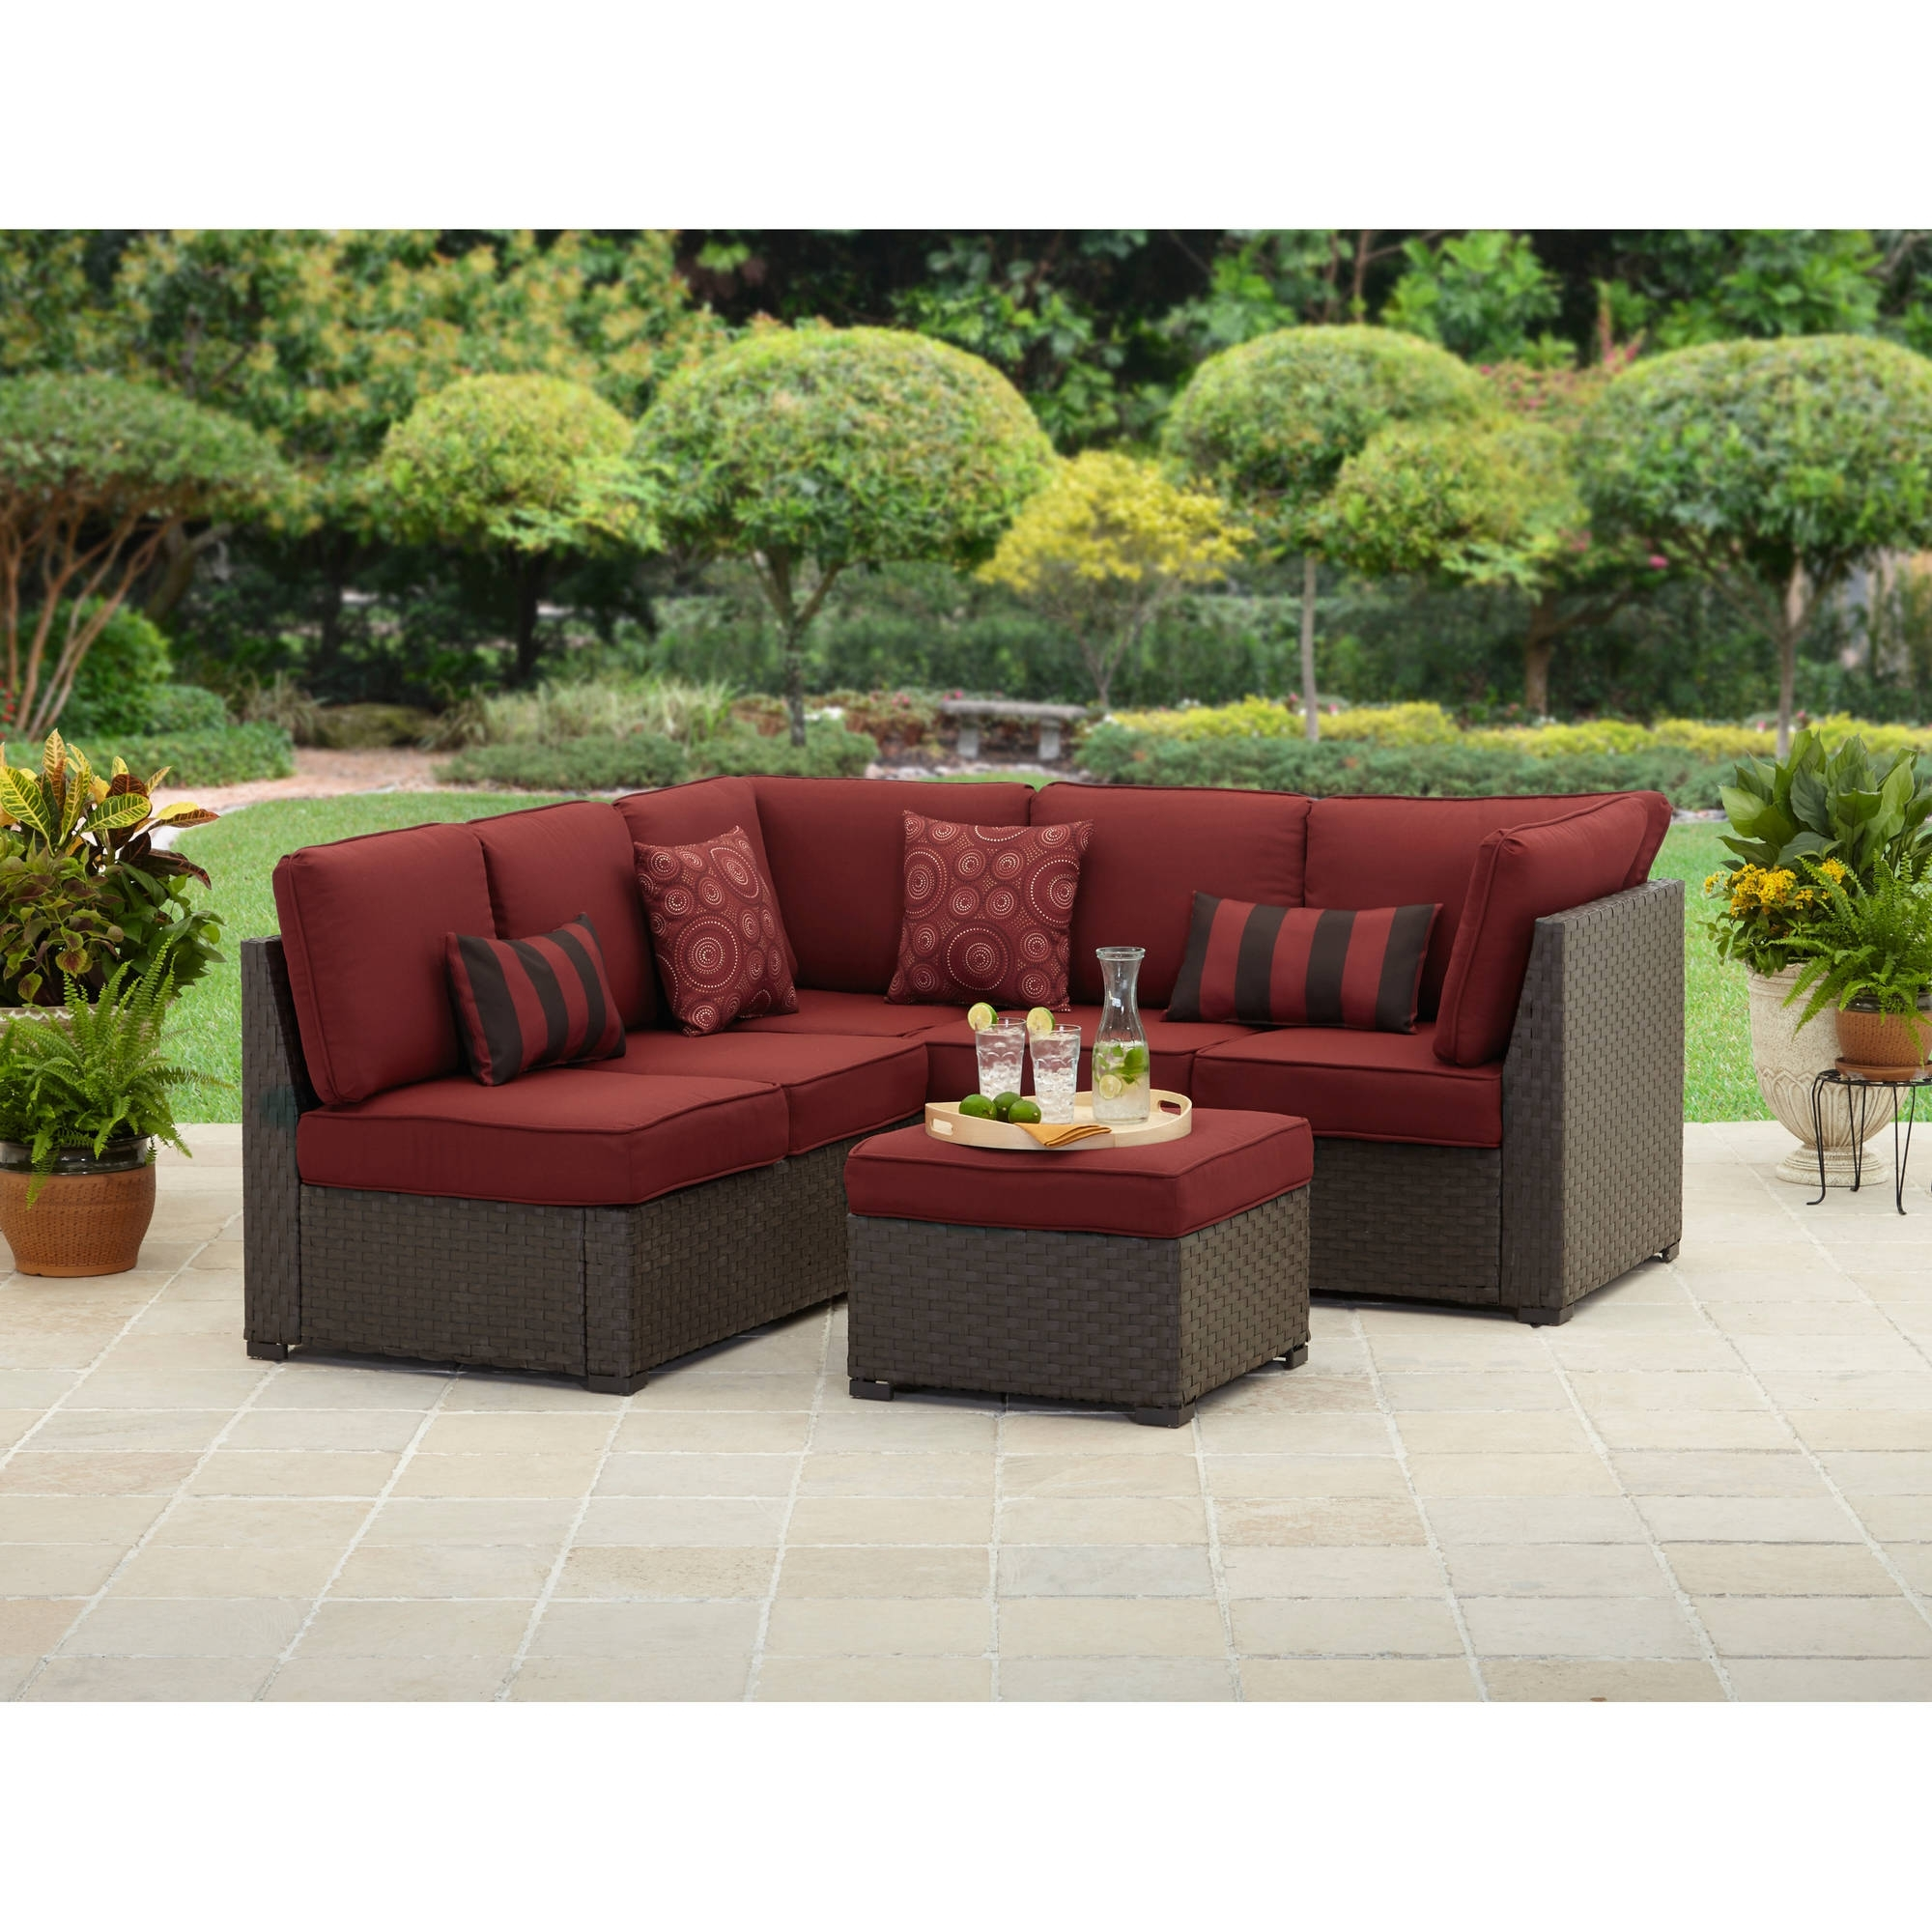 Most Recently Released Better Homes And Gardens Rush Valley 3 Piece Outdoor Sectional Within 3 Piece Patio Conversation Sets (View 11 of 15)